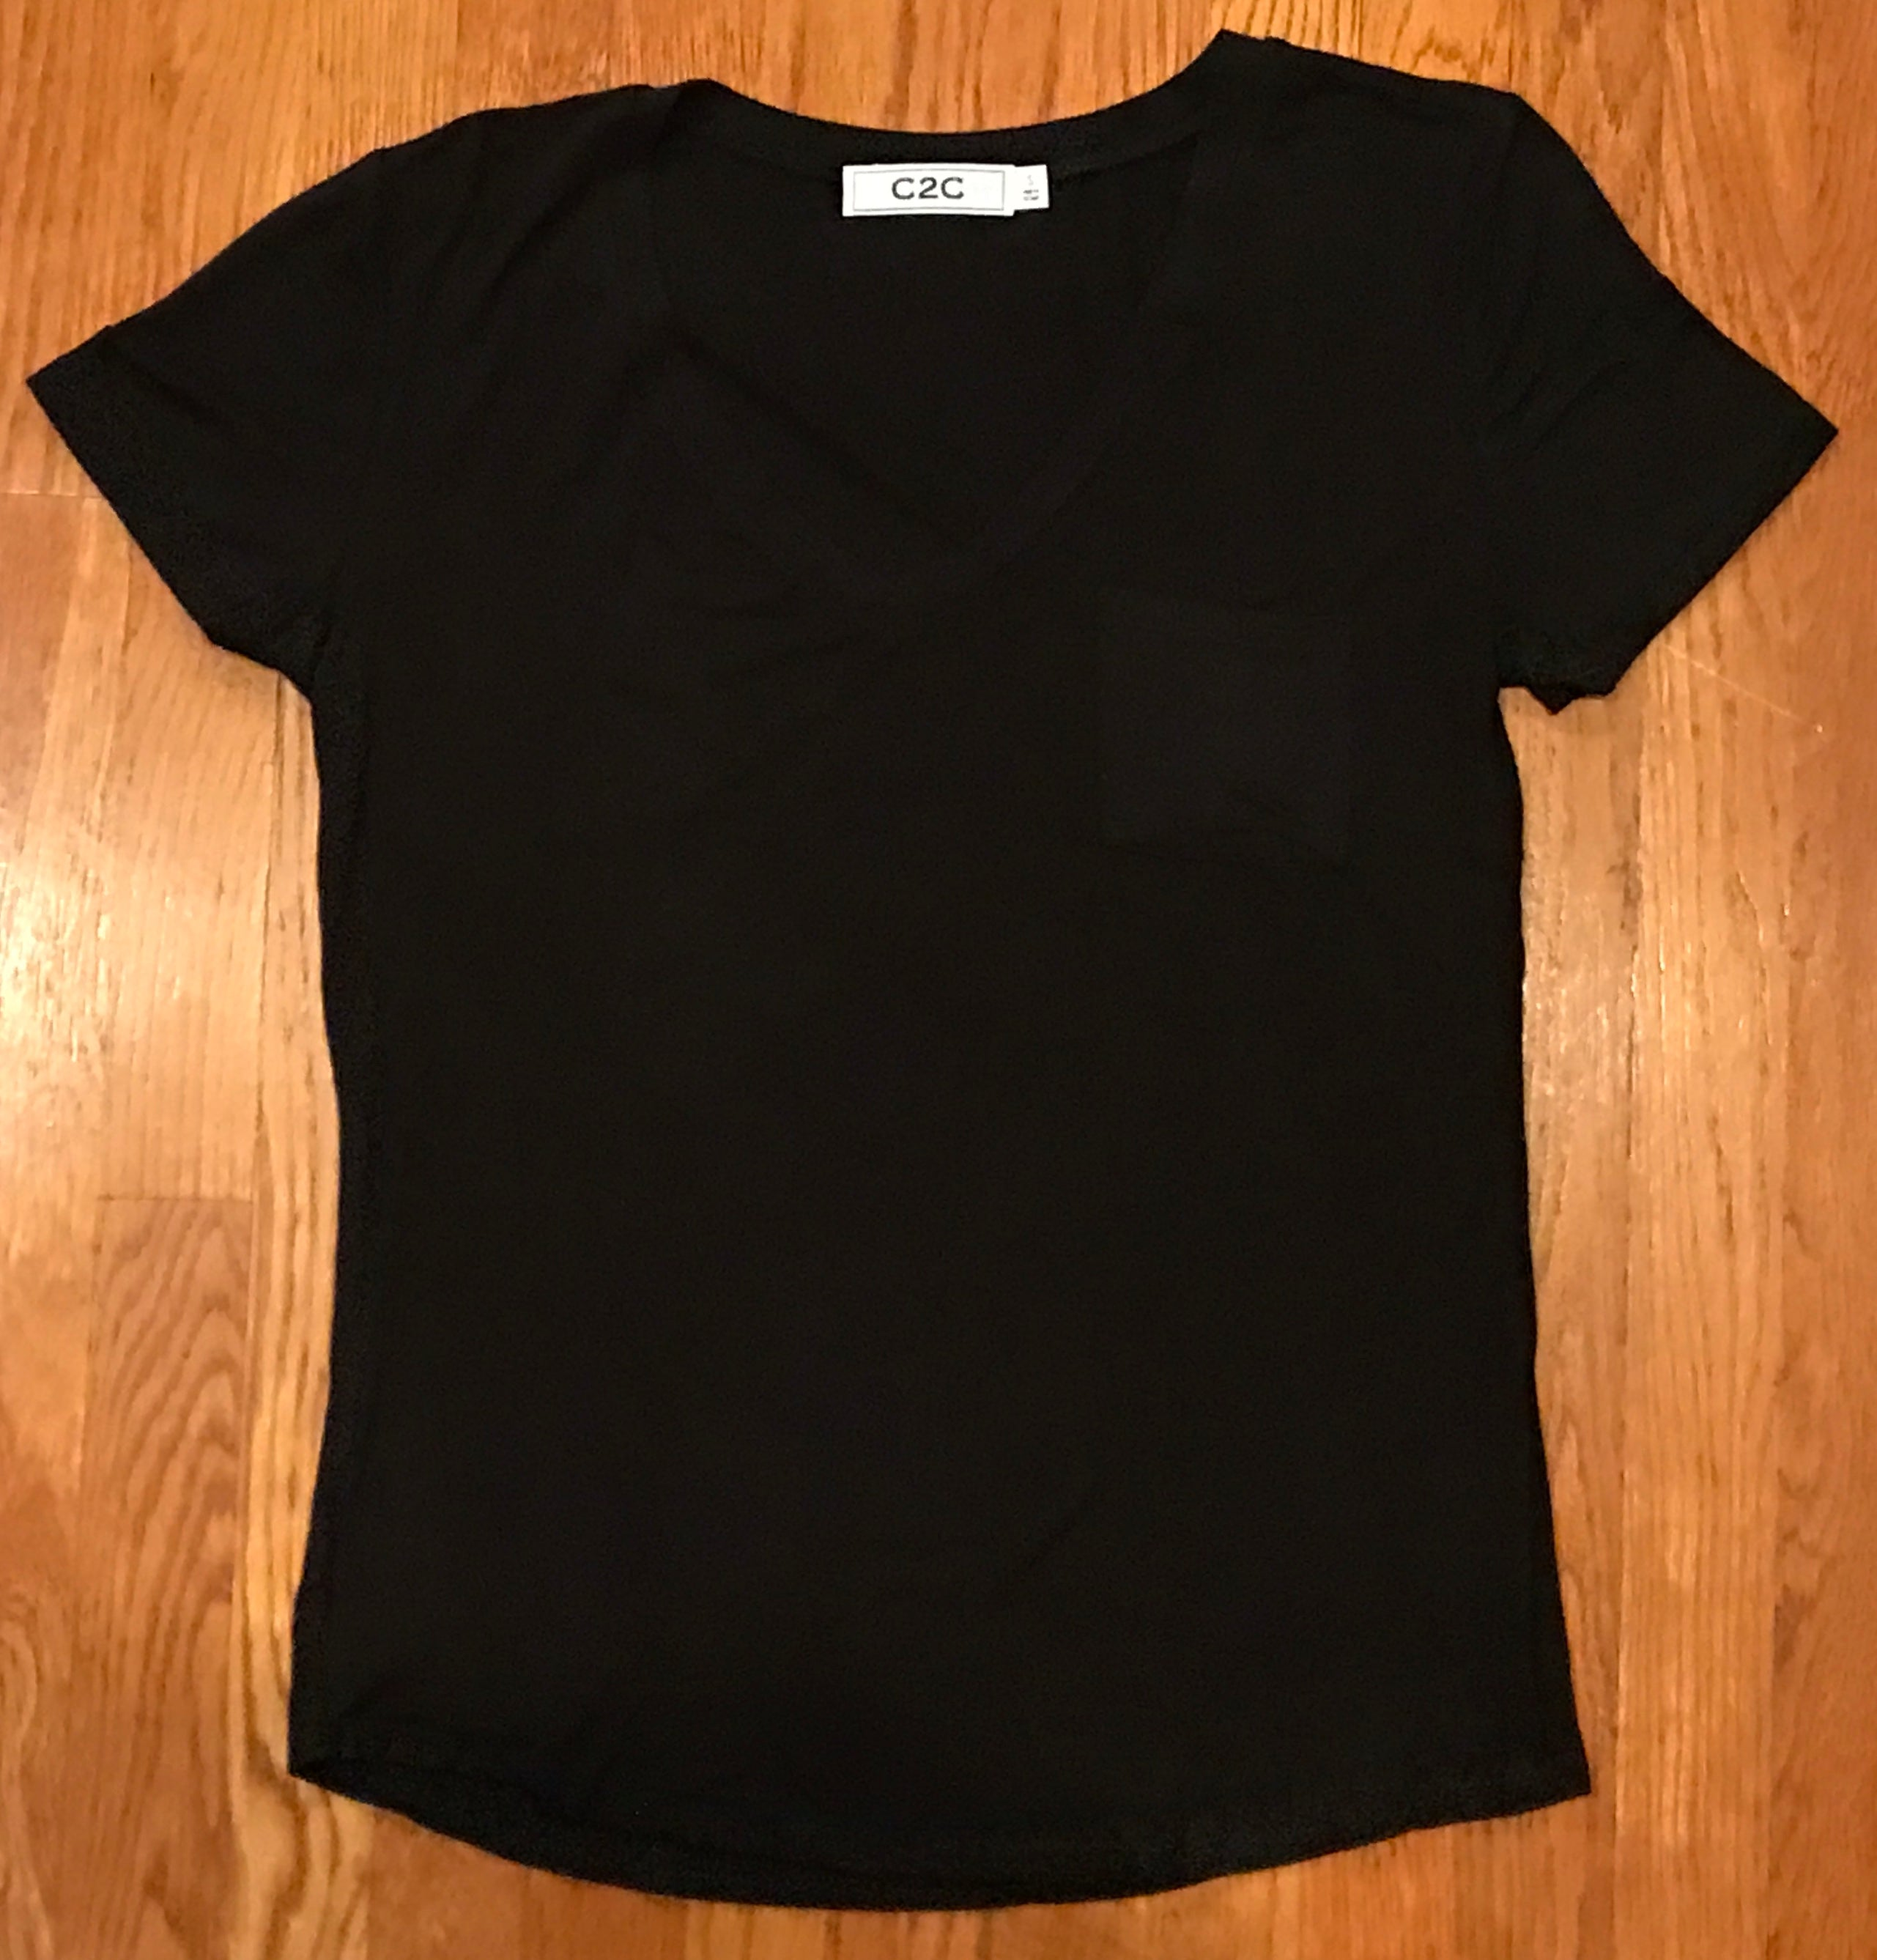 Basic Black V-neck Tee with Pocket